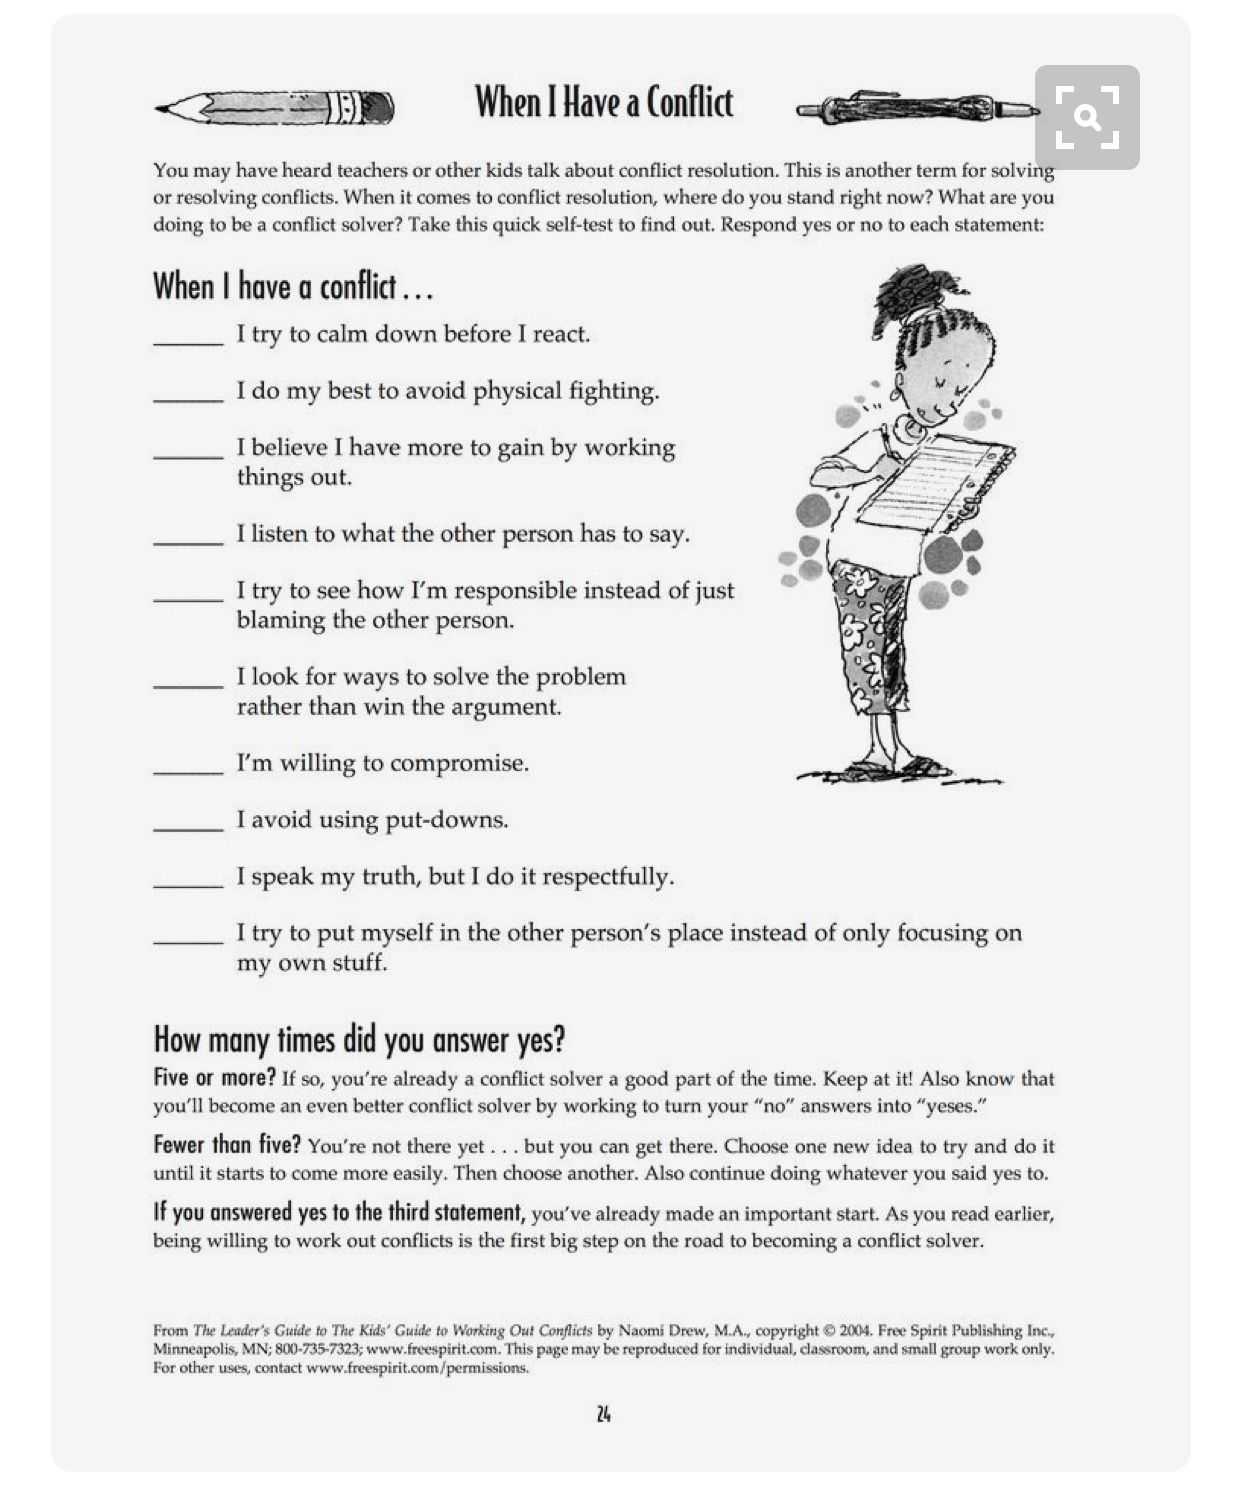 Worksheets Anger Management Therapy Worksheets pin by eboni salley on social skills pinterest therapy teach your child to read free printable worksheet when i have a conflict quick self test help kids determine how they handle co